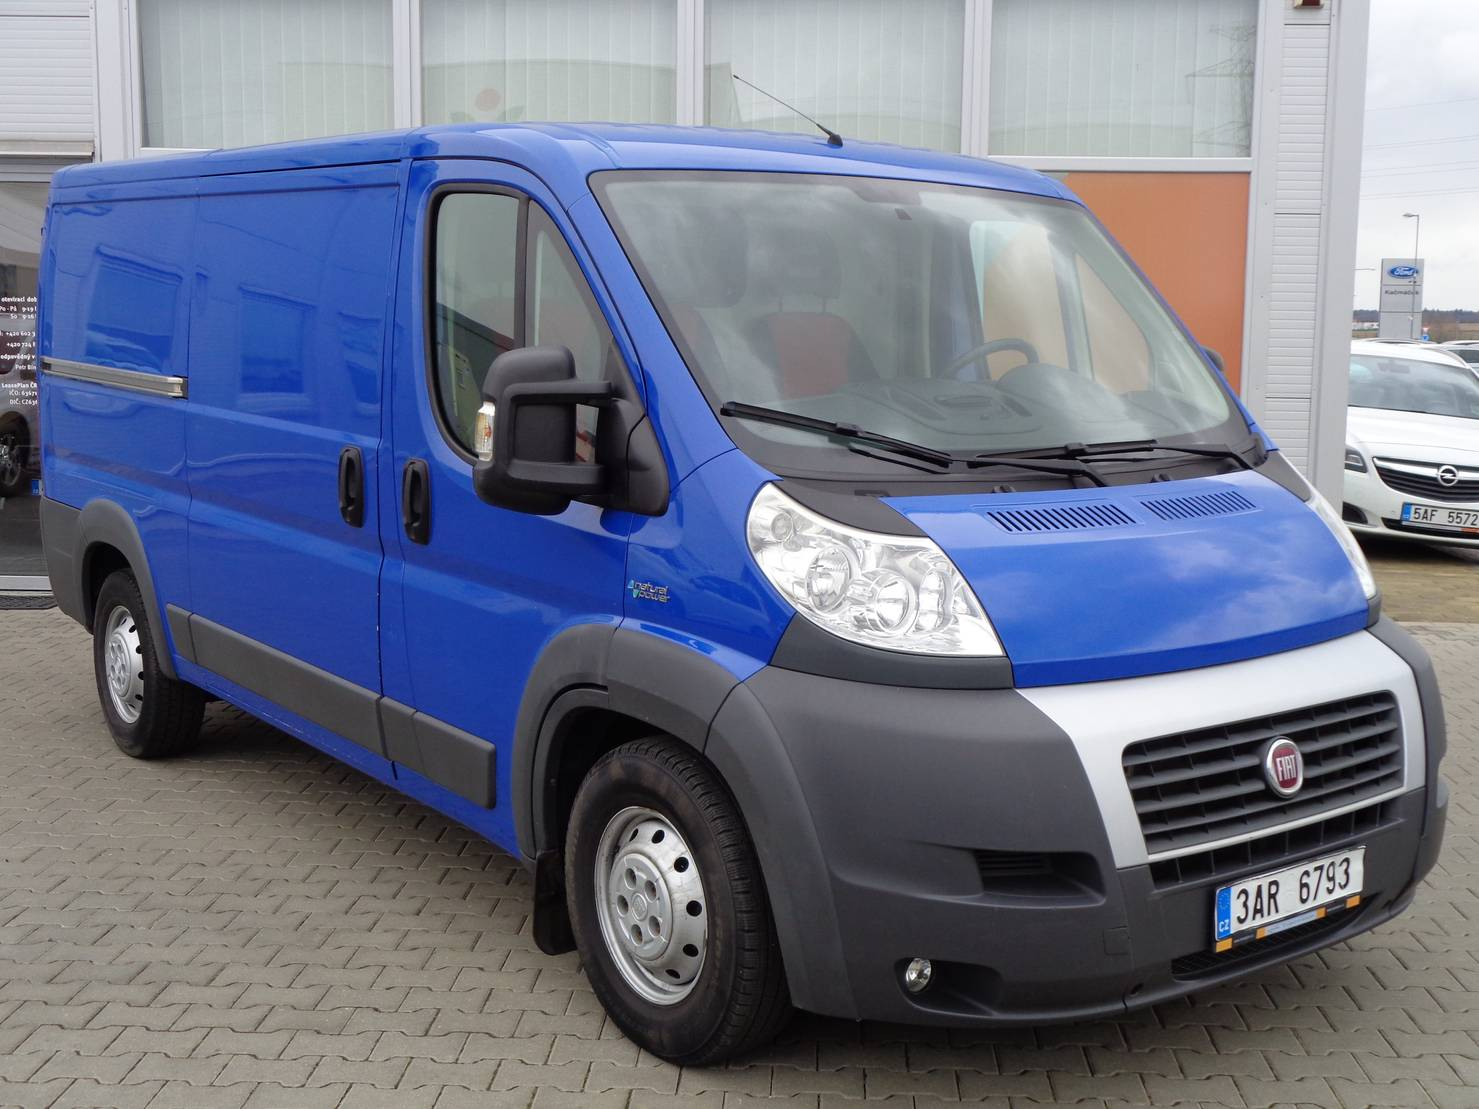 Fiat Ducato Maxi L2H1 Natural Power detail1